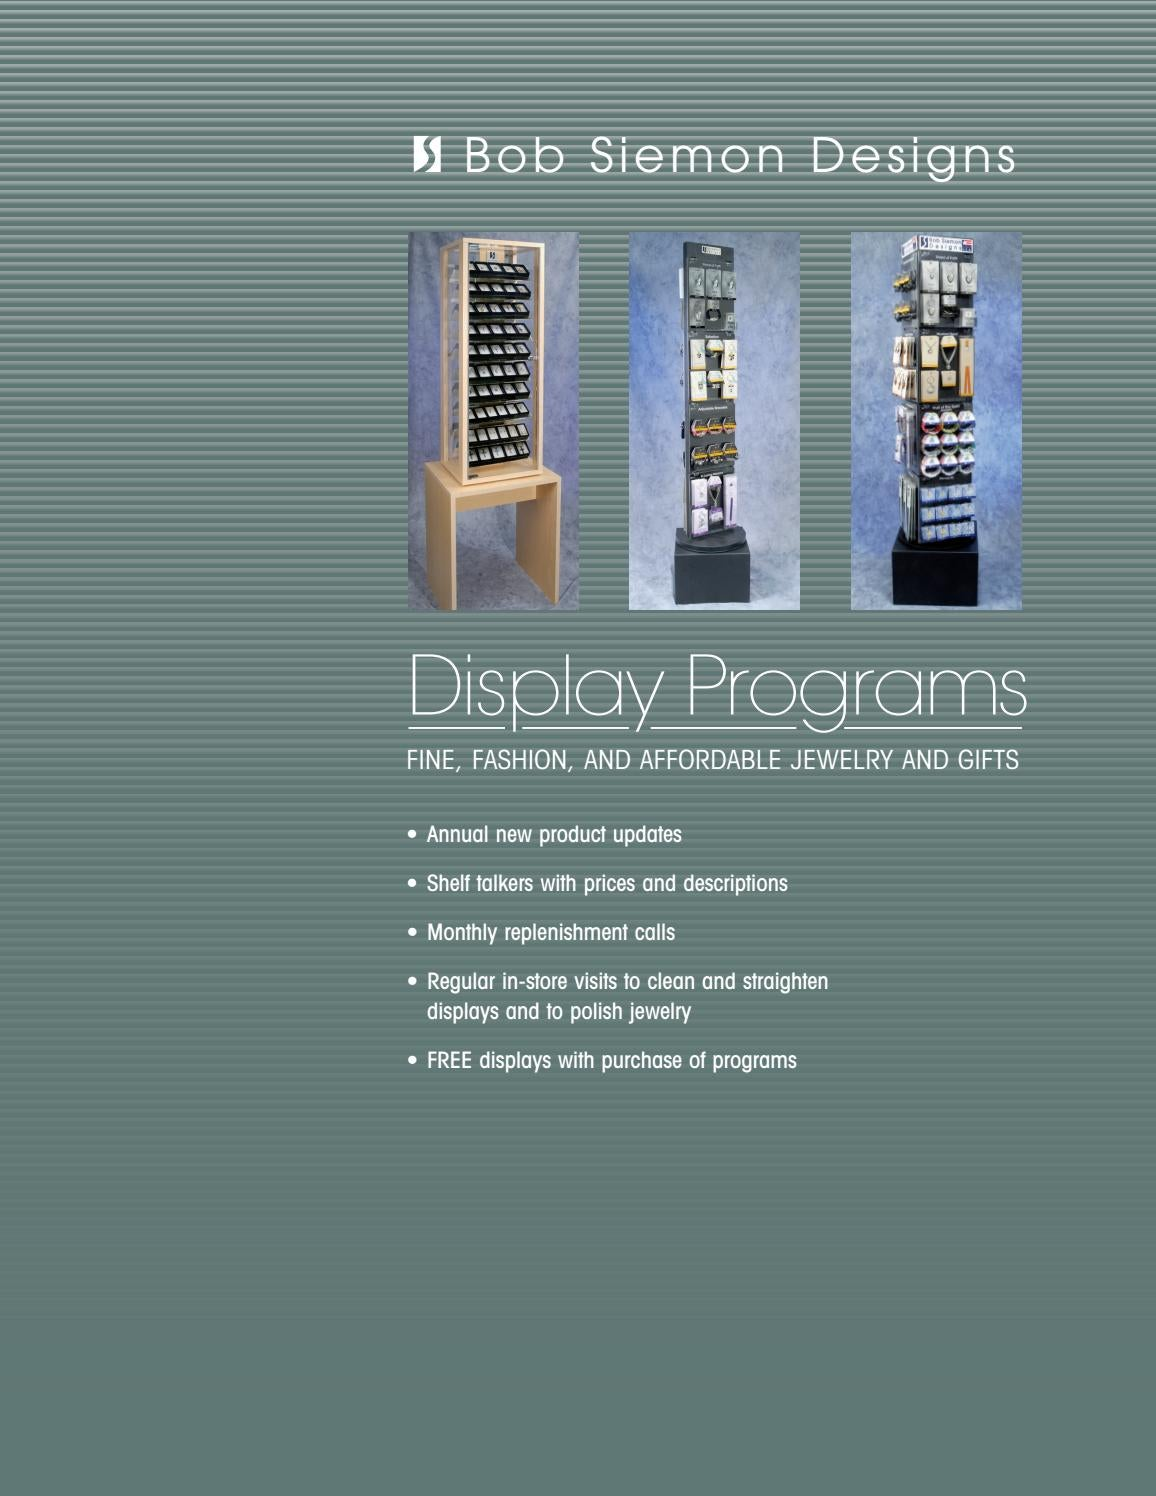 3 Display Programs By Bob Siemon Designs Issuu